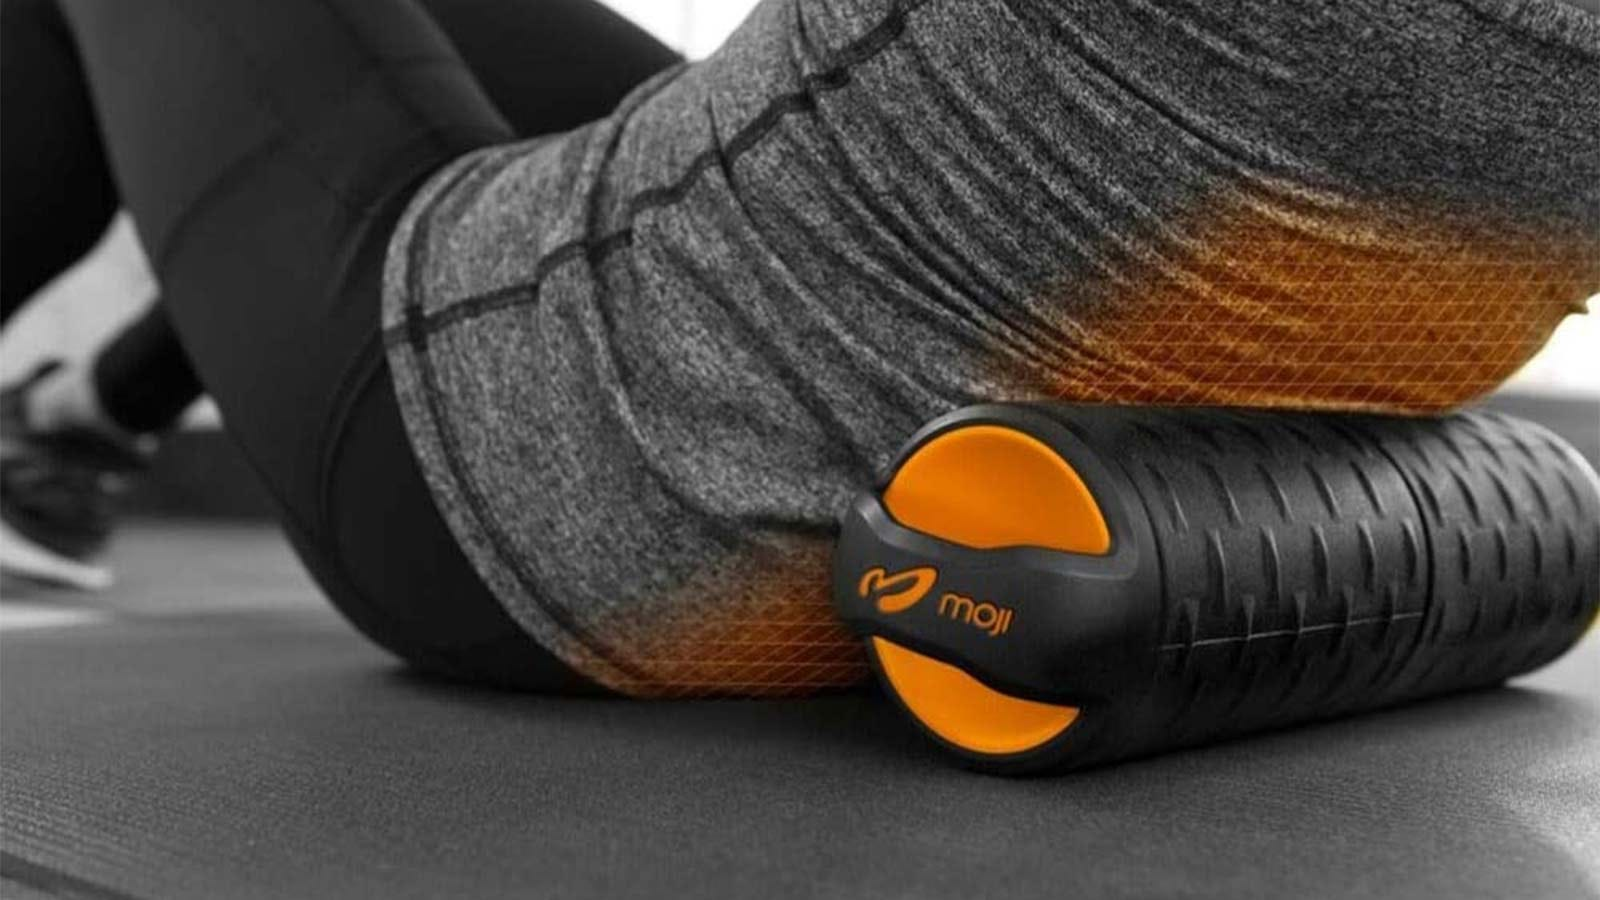 Someone using the Moji heated foam roller on their mid-back to help roll out tension.